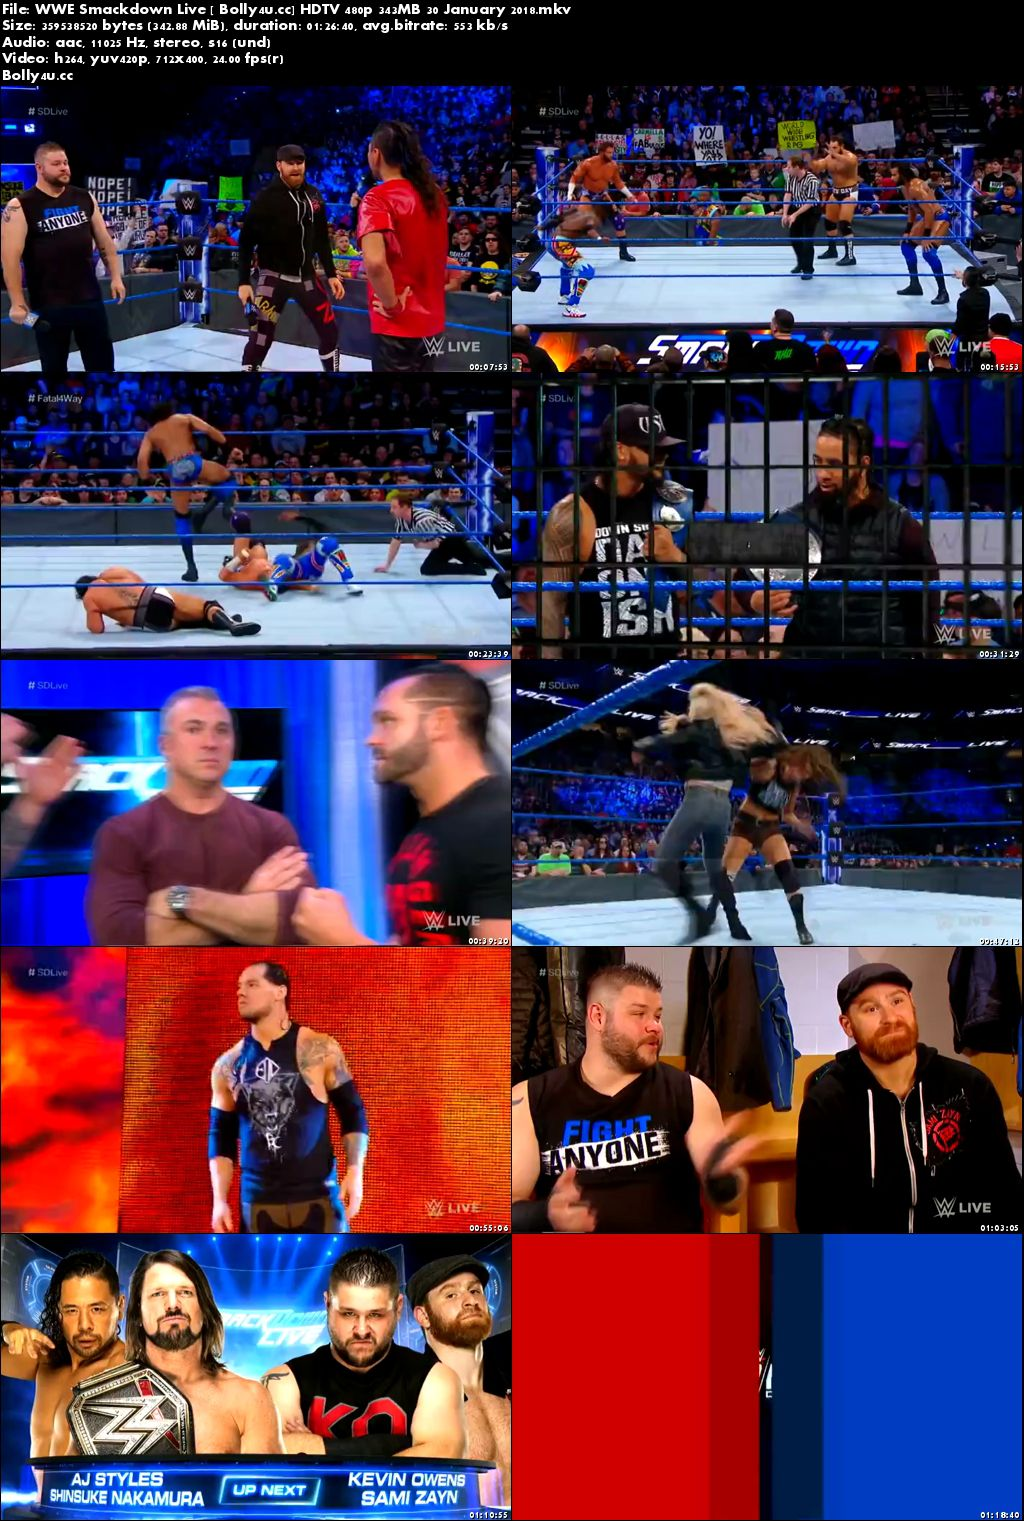 WWE Smackdown Live HDTV 480p 350MB 30 January 2018